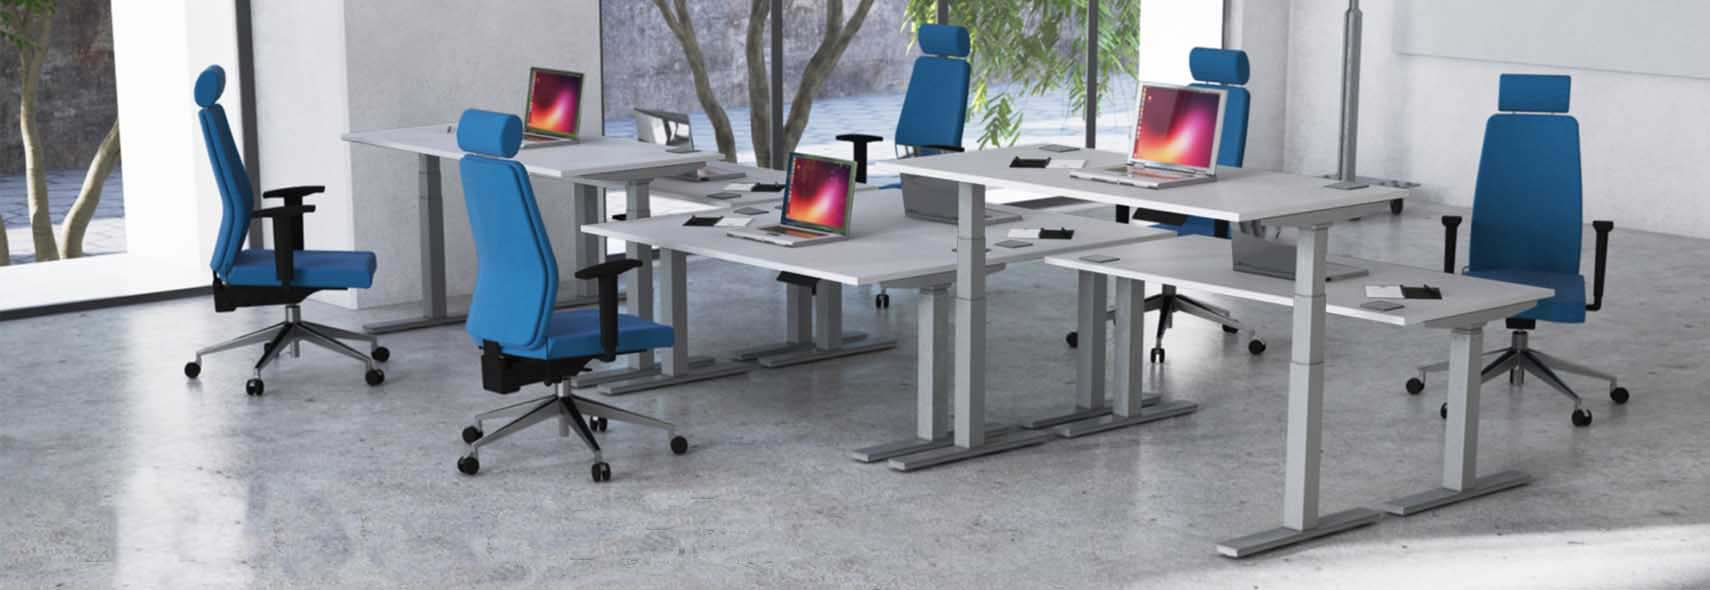 ErgonomicFurniture&Seating